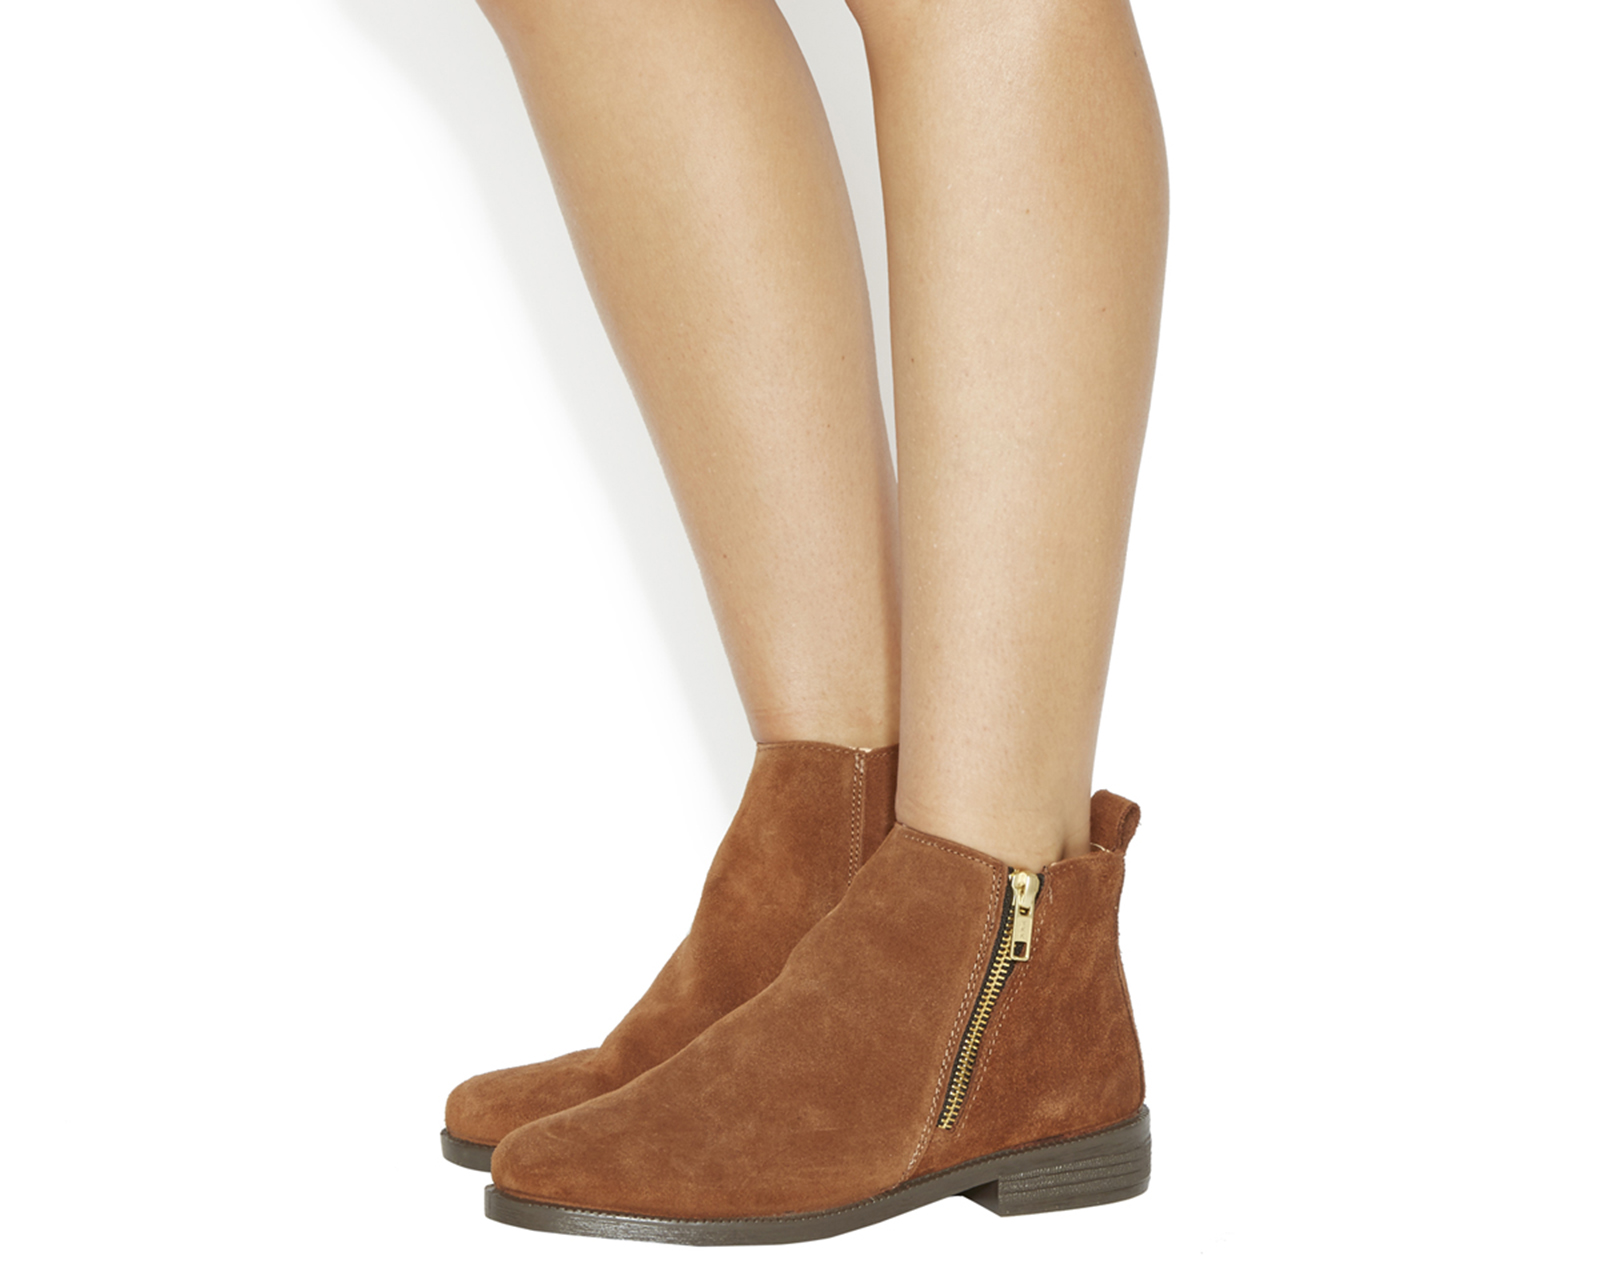 Womens Office Lazy Days Flat Boots TAN SUEDE Boots  c772330af83c